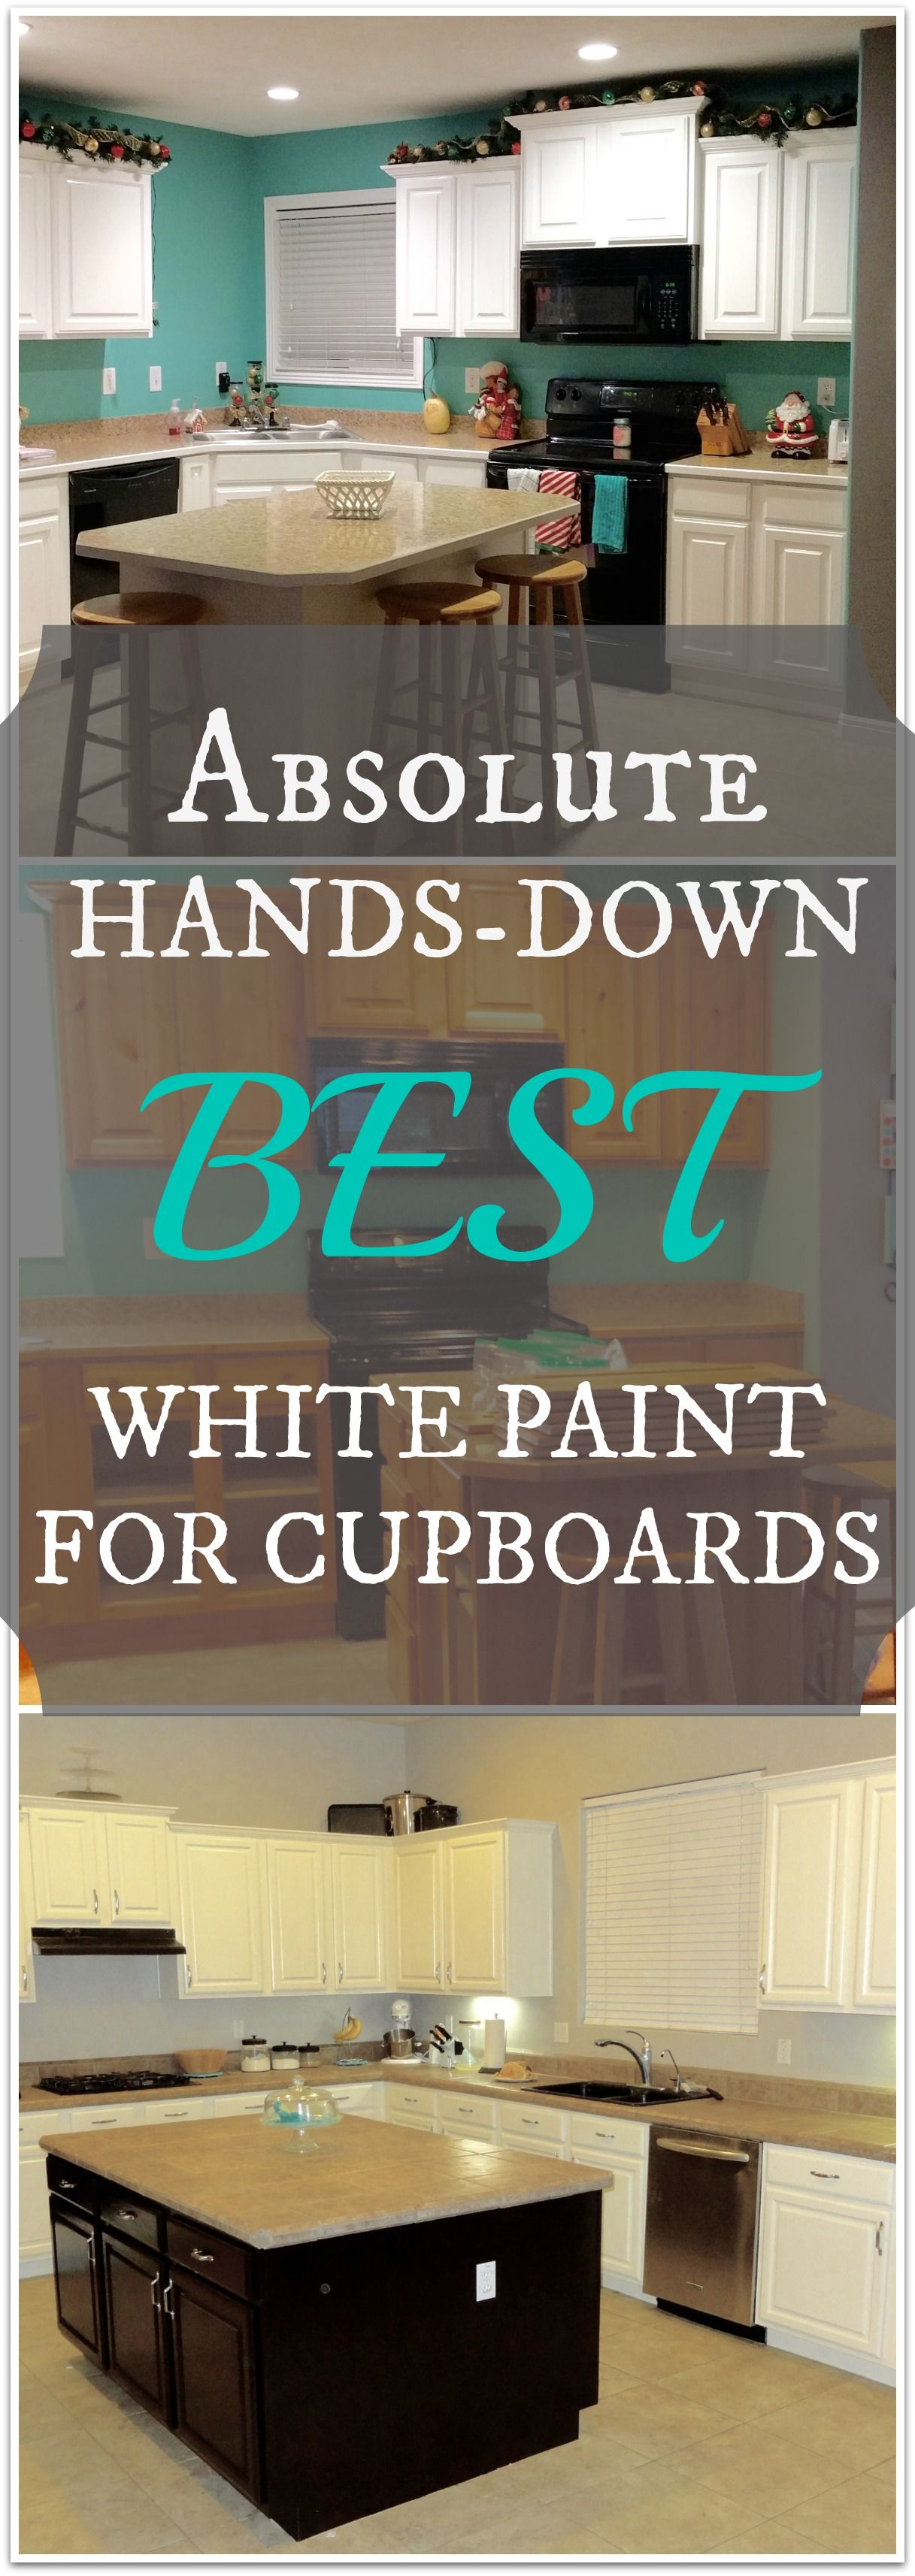 How to Paint Kitchen Cabinets White | Dulce hogar, La playa y Interiores